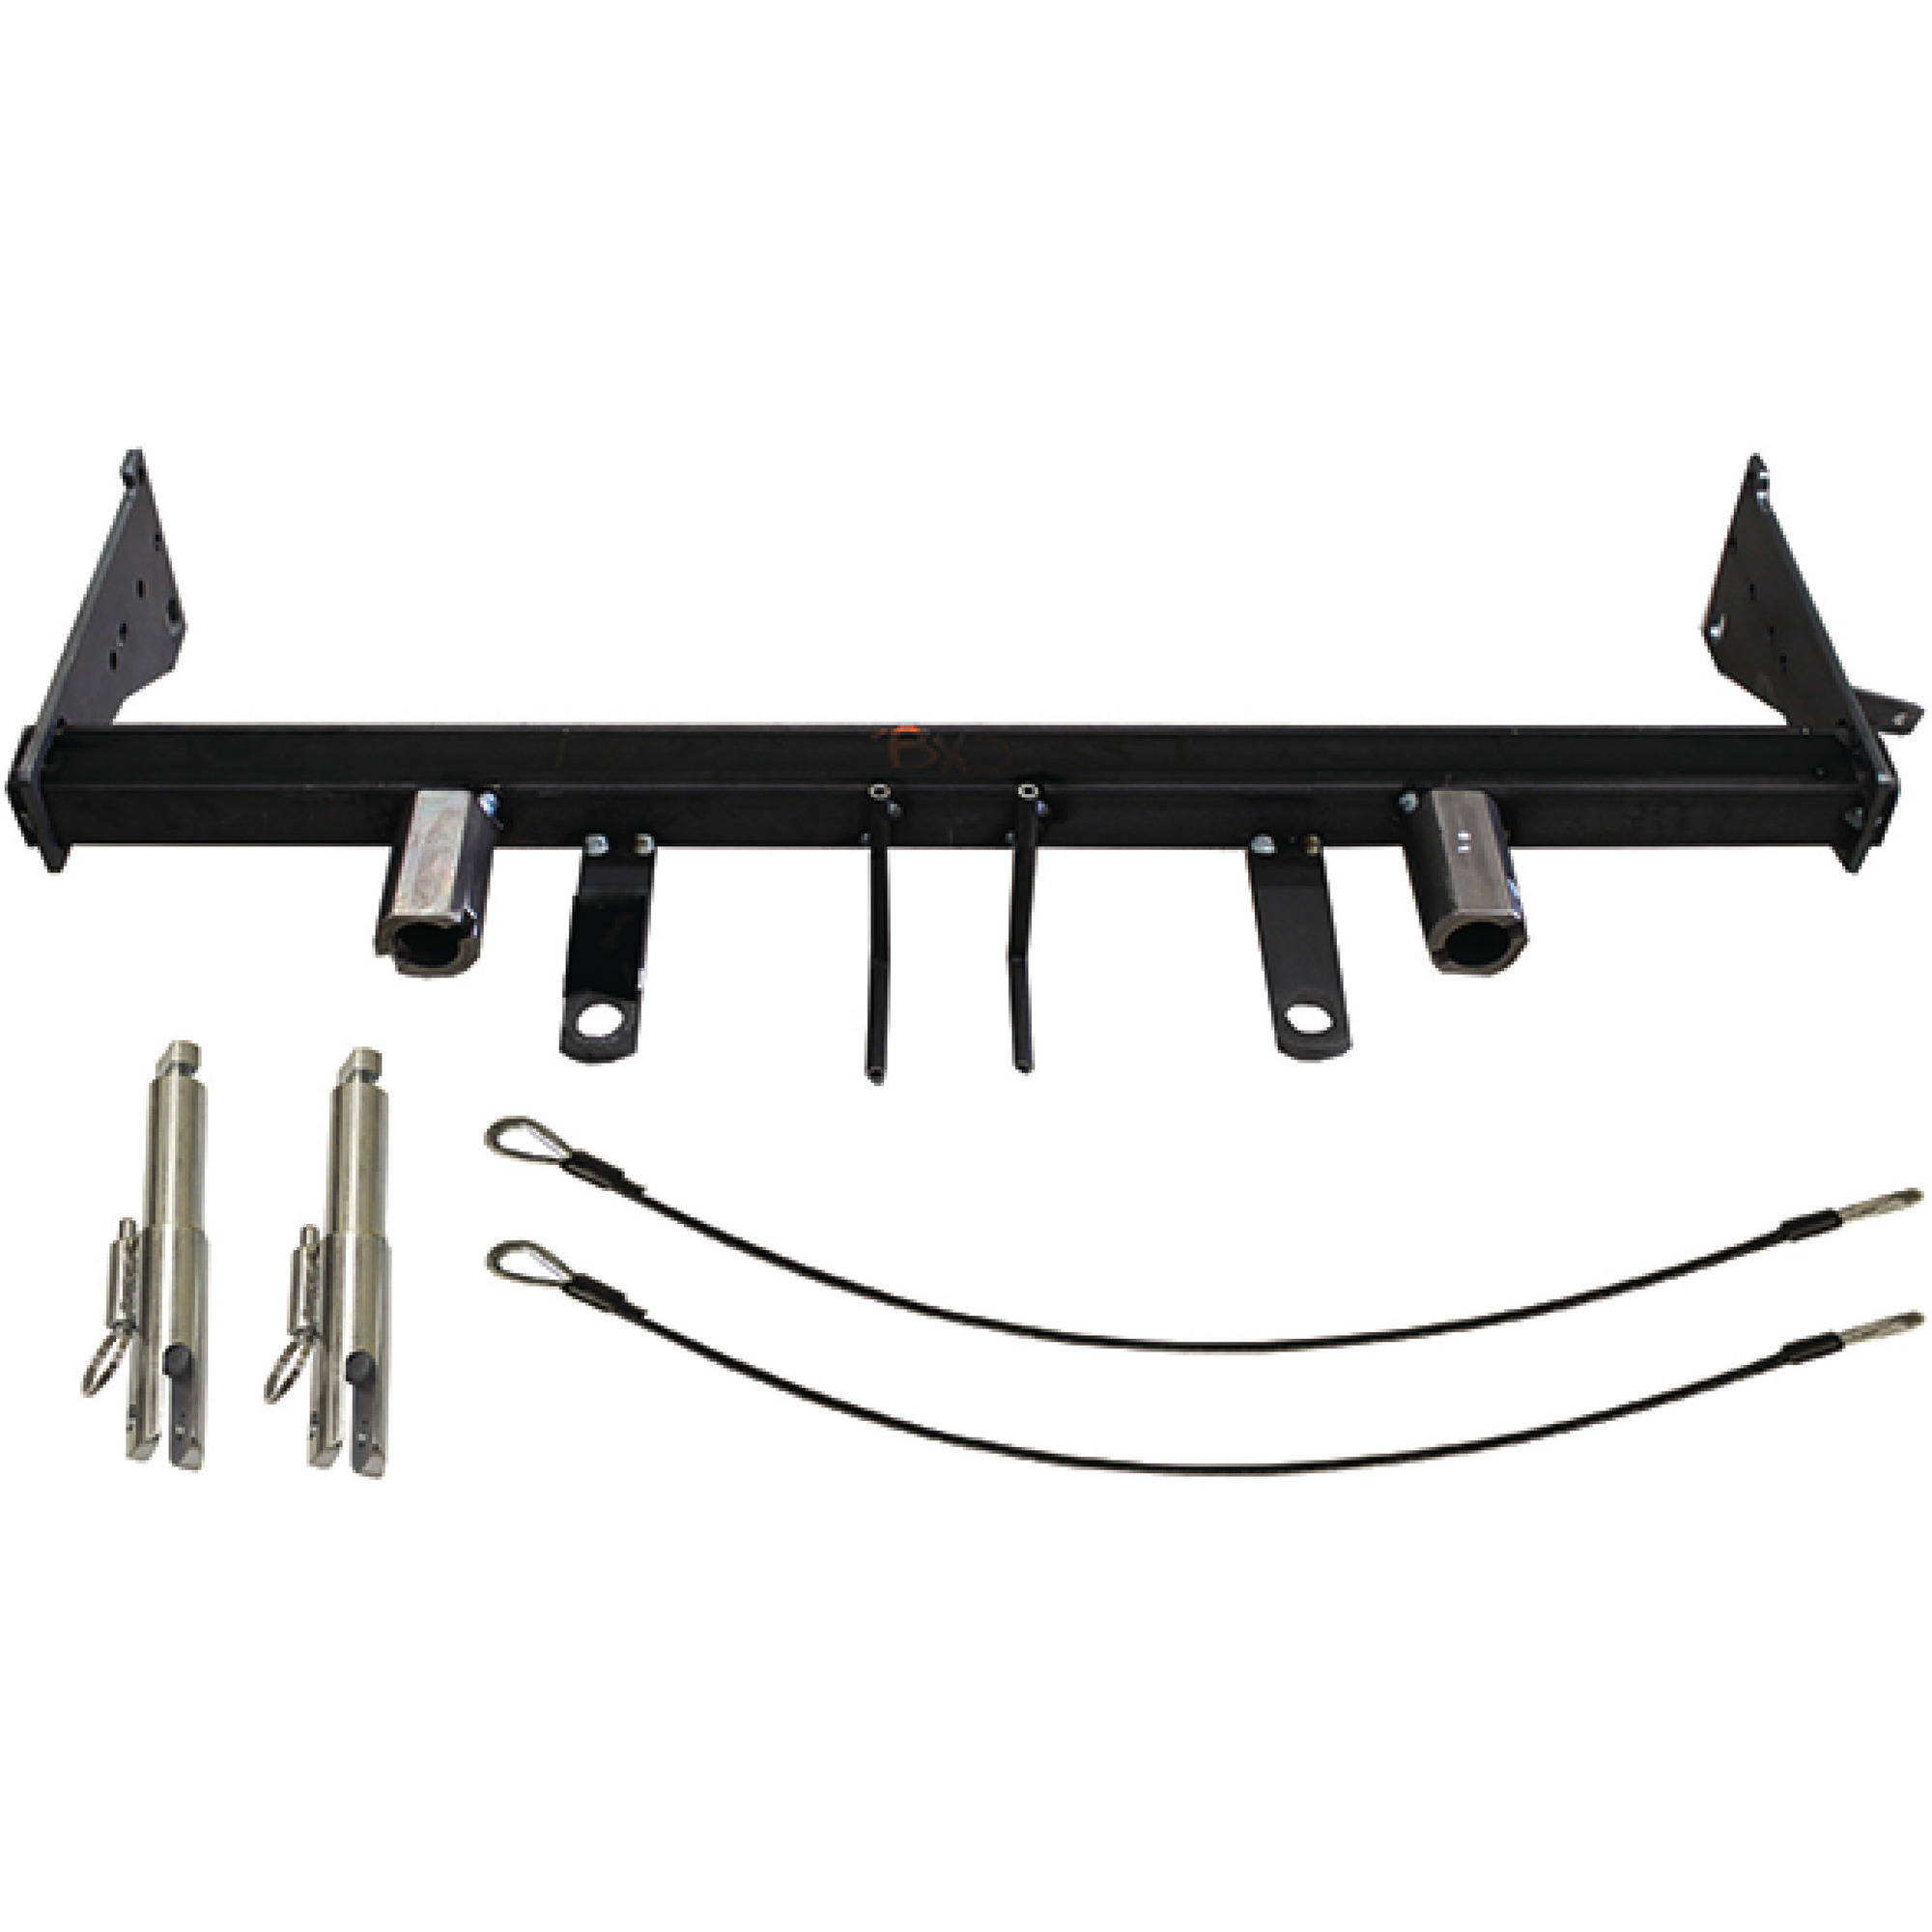 Blue Ox BX1126 Removable Tab RV Tow Baseplates for 2007-2017 Jeep Wrangler Wrangler Unlimited (JK) (All Models... by Blue Ox